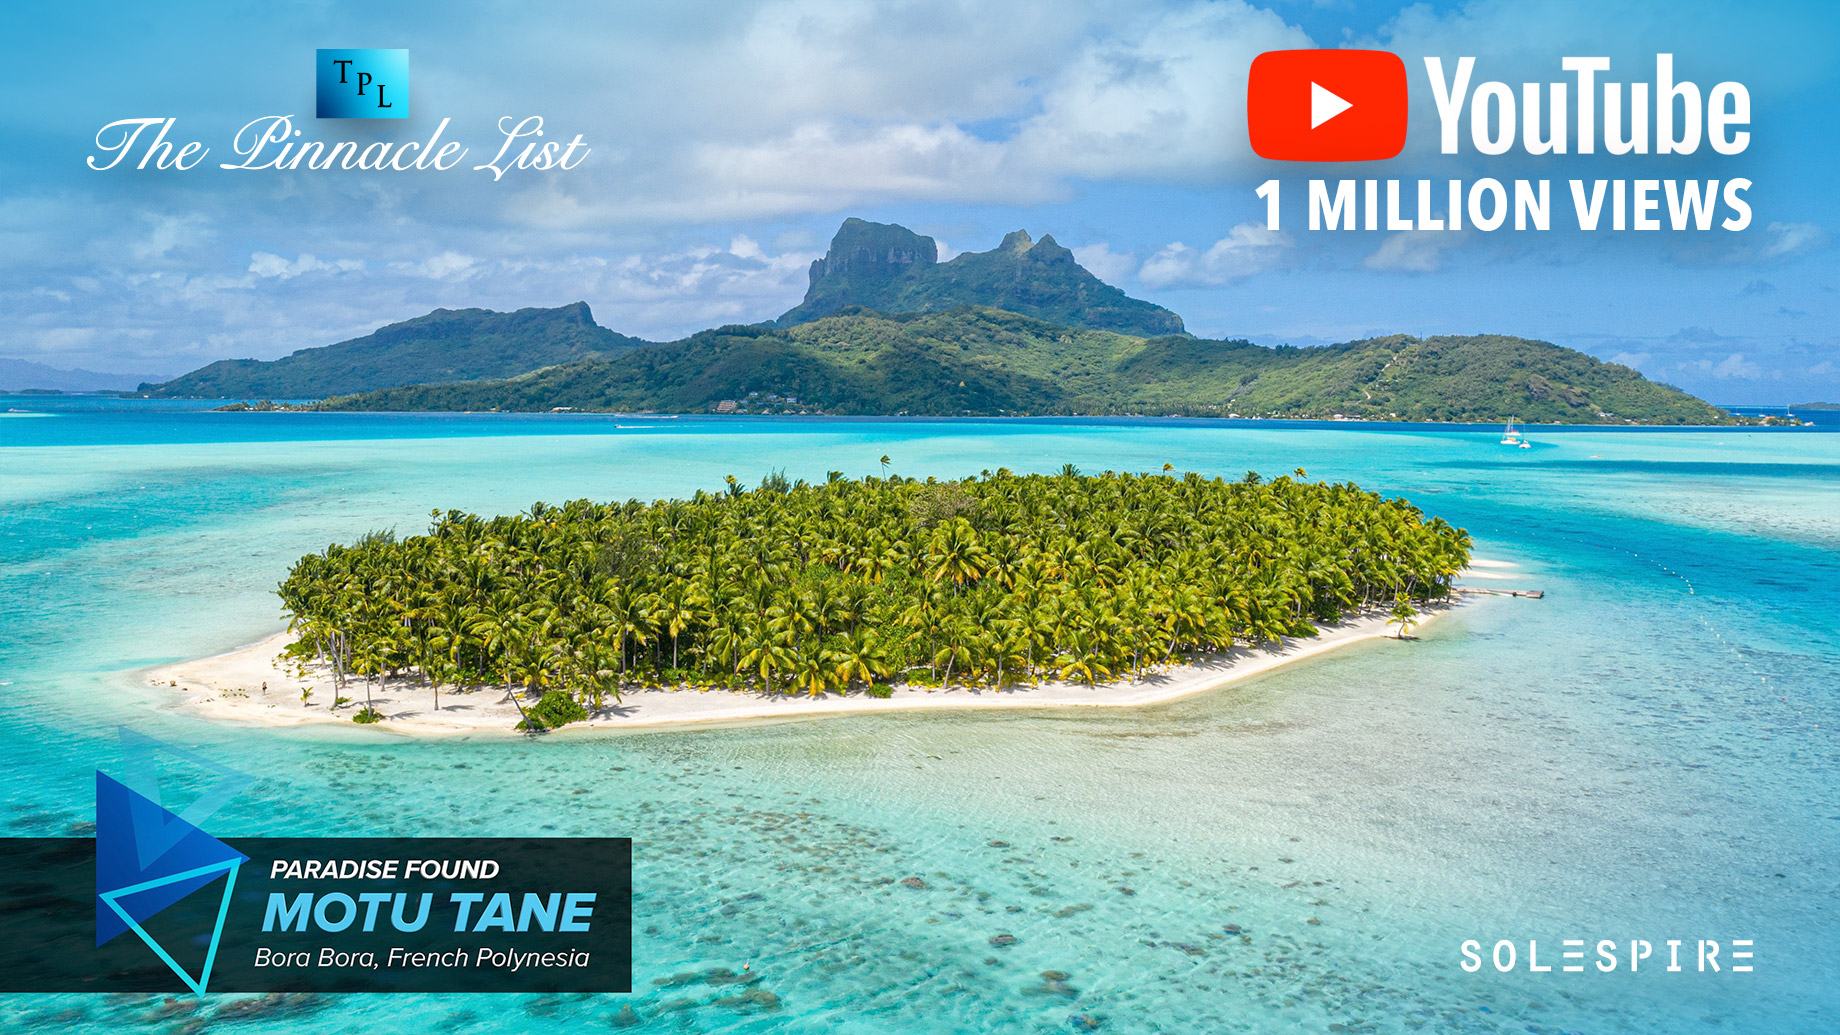 Motu Tane Video Achieves 1 Million Views on The Pinnacle List YouTube Channel